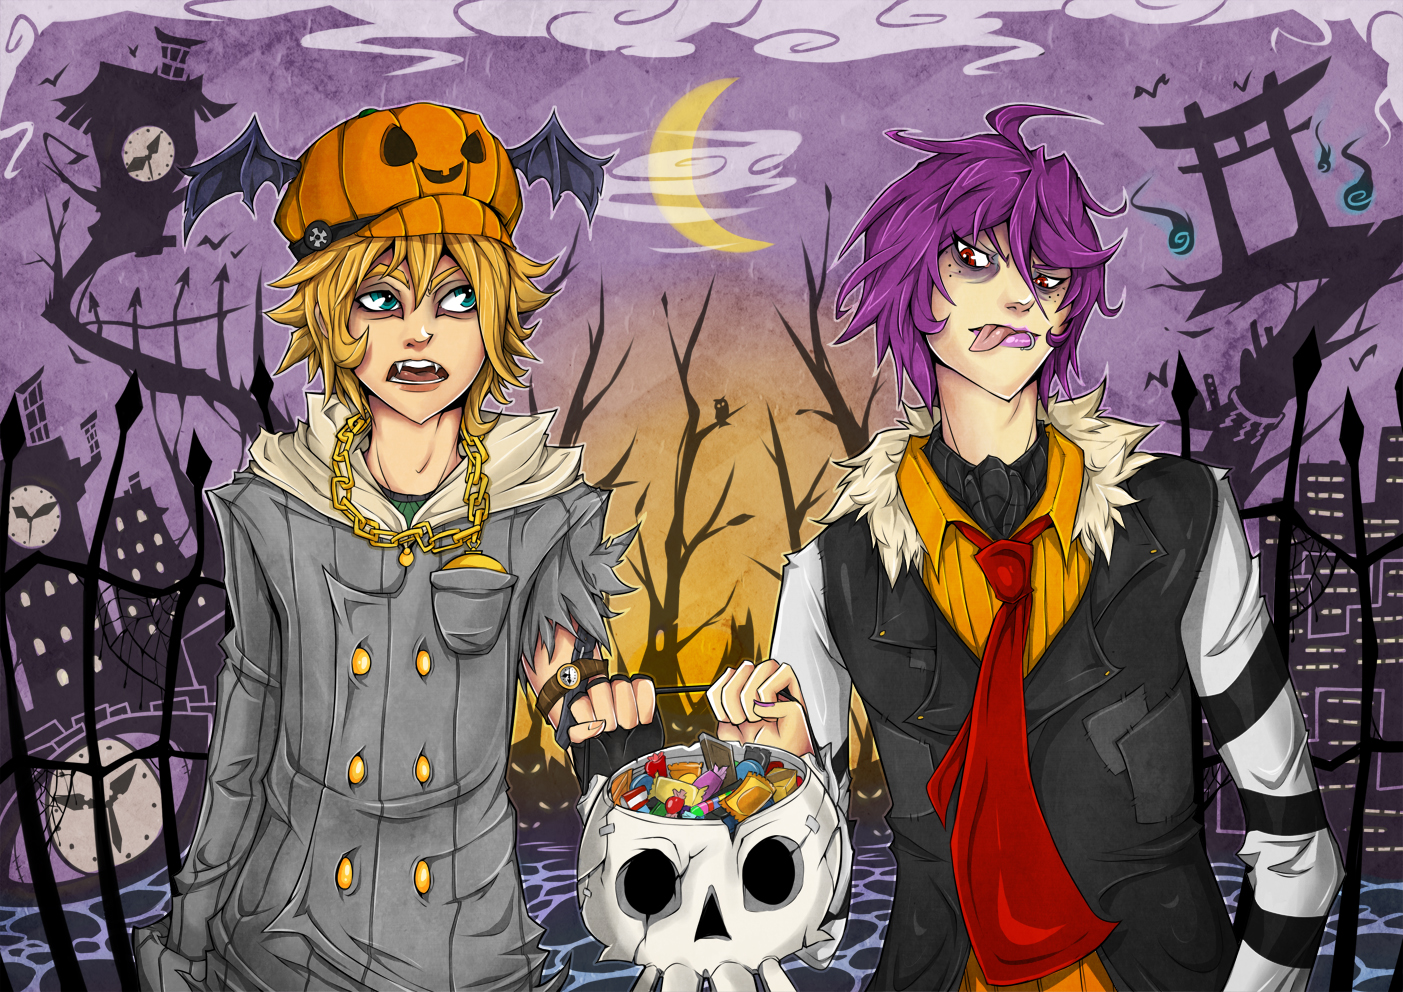 Morty and Kei's Halloween